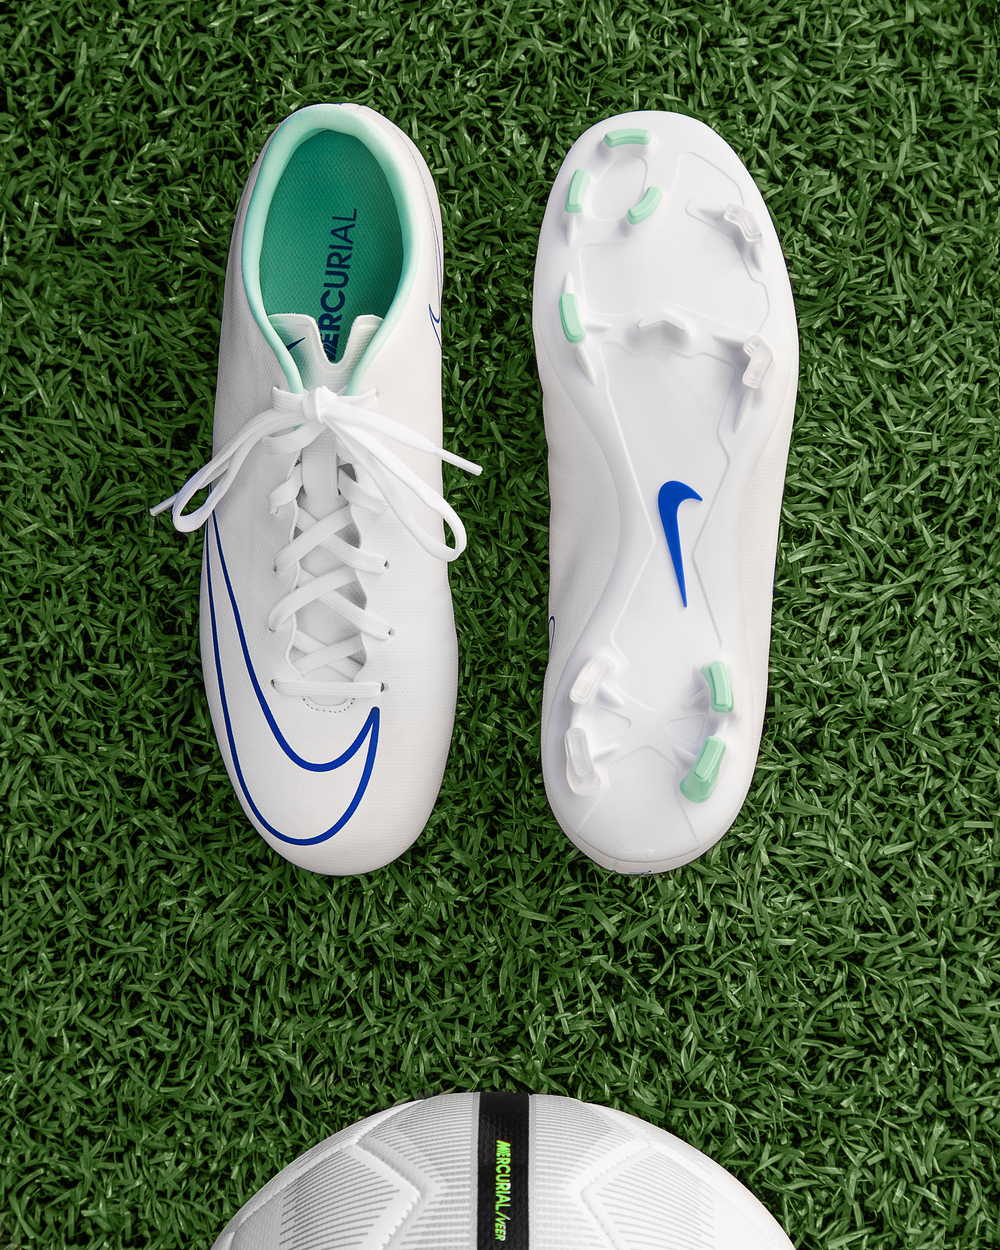 Nike cleats above large spencer wallace photo product shoe soccer.jpg